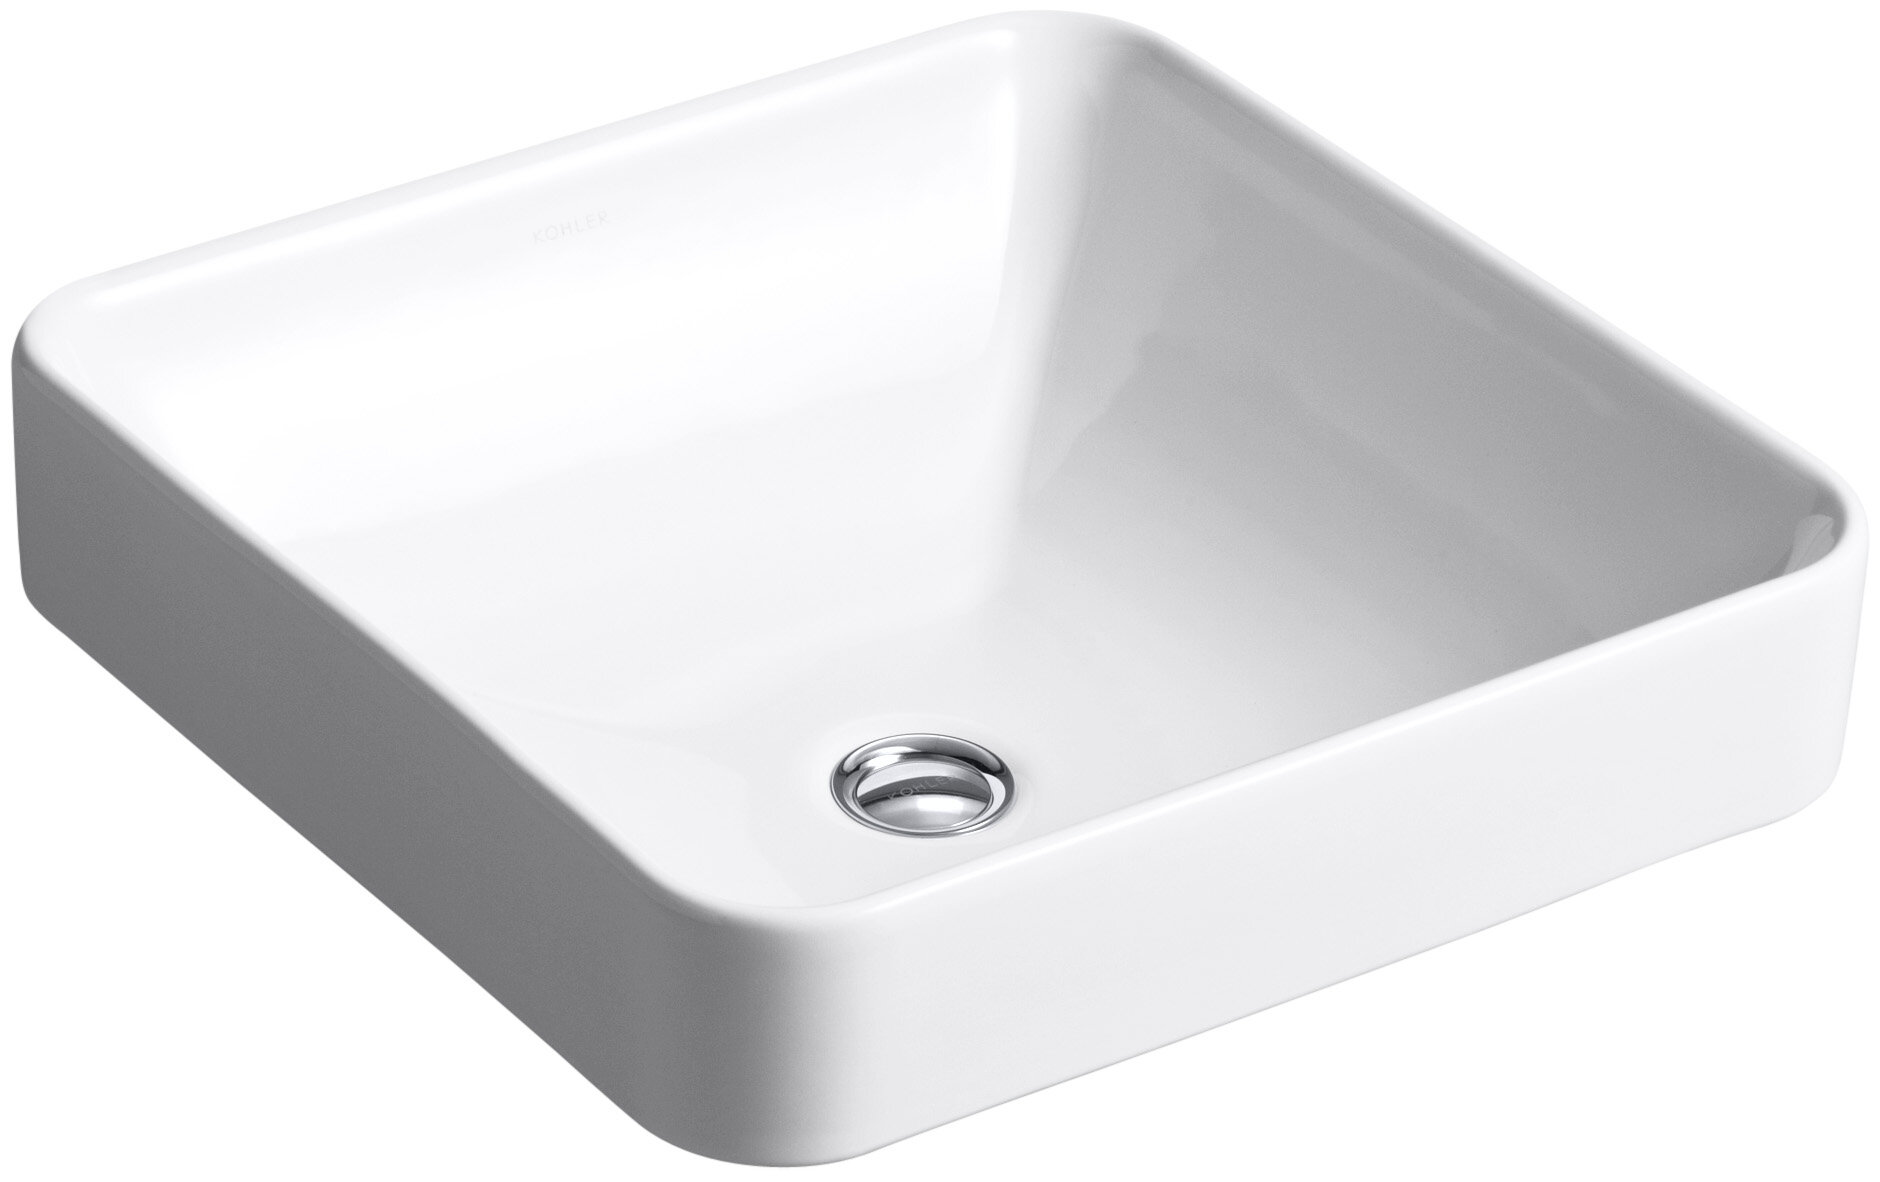 Vox ceramic square vessel bathroom sink with overflow reviews allmodern